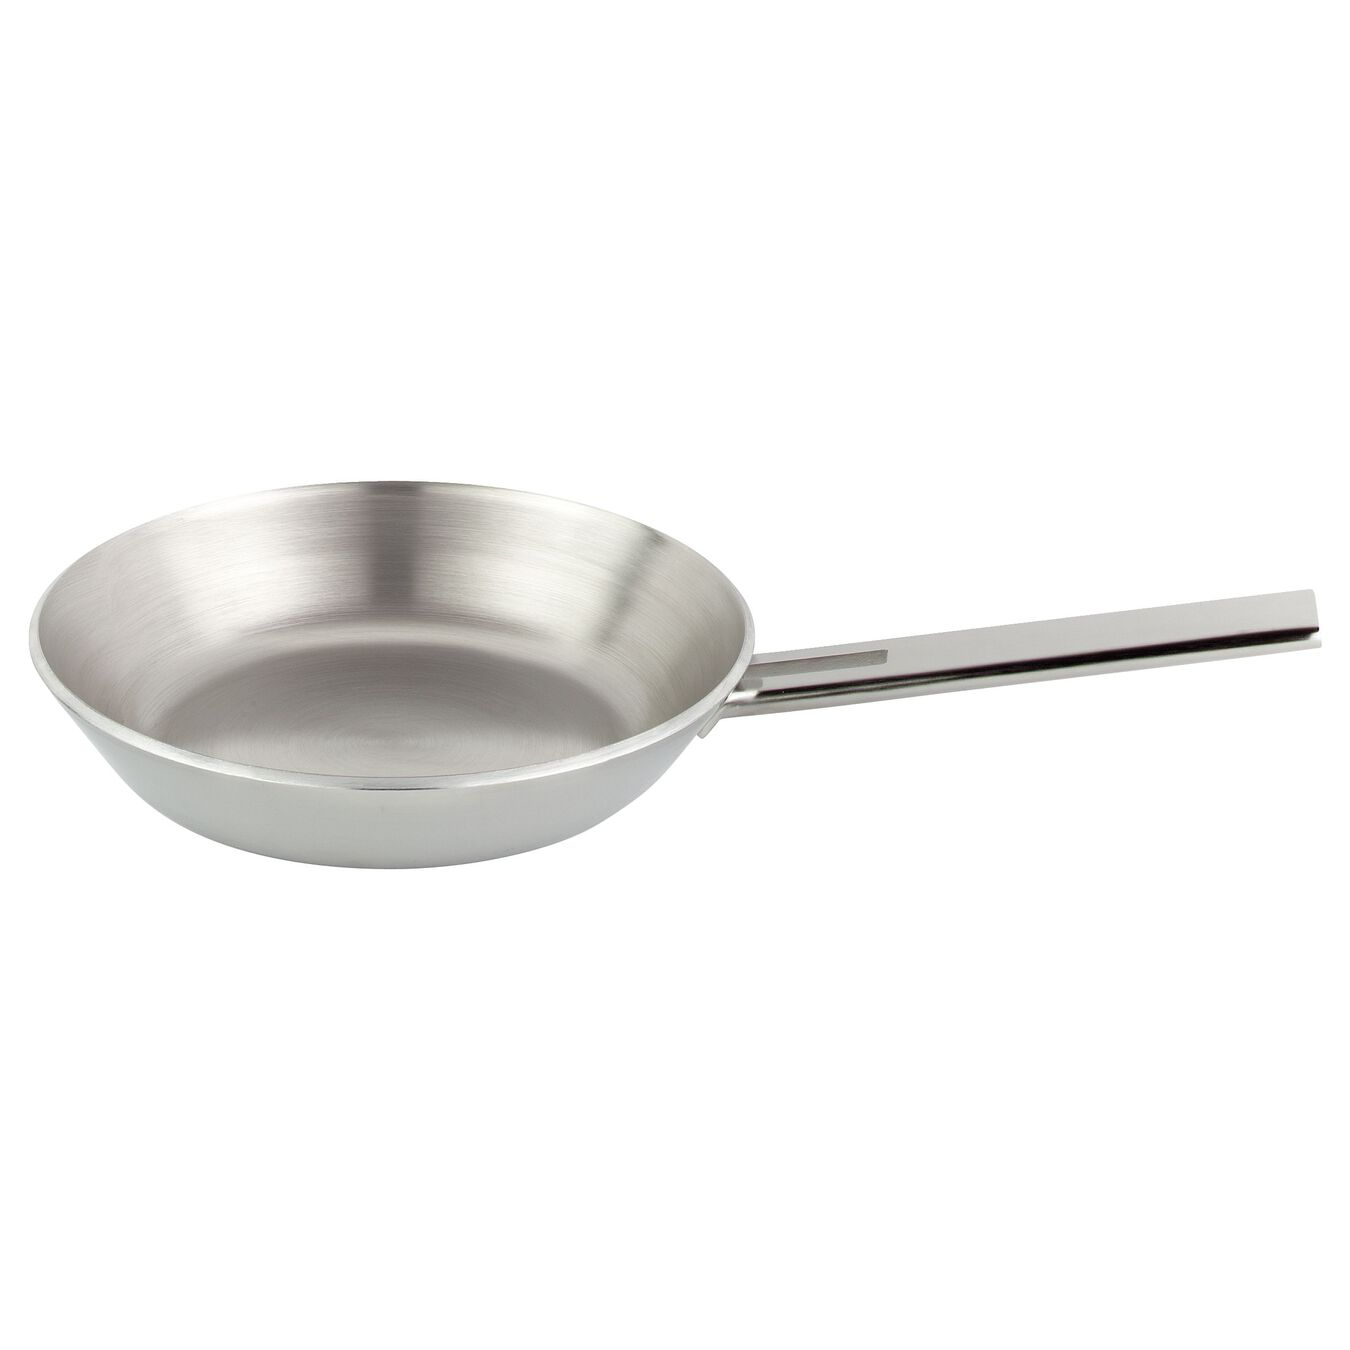 9.4-inch Stainless Steel Fry Pan,,large 1